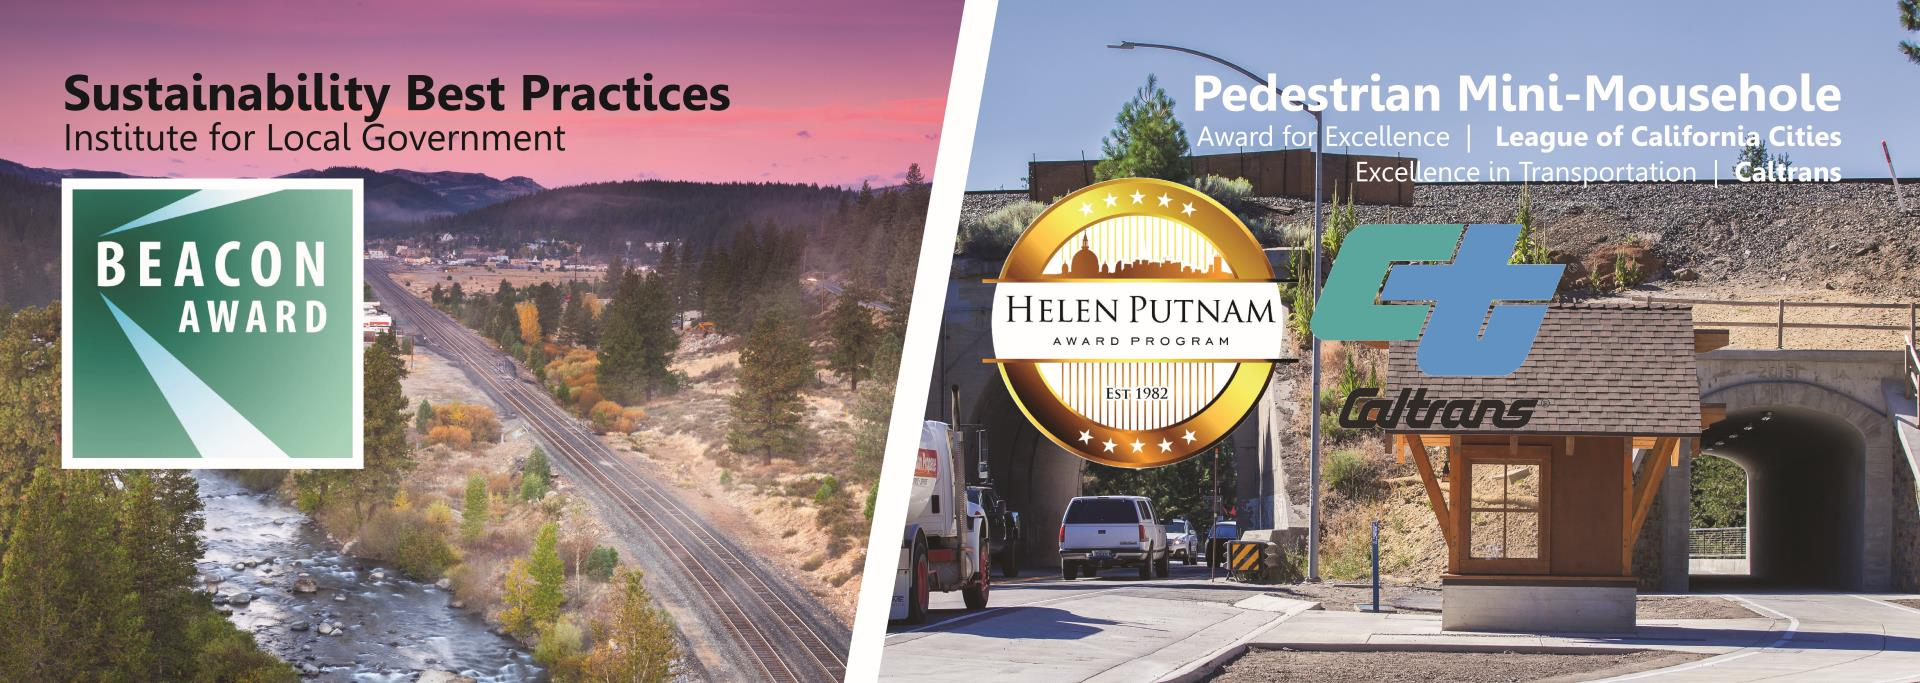 Award Web Banner - Helen Putnam & Beacon